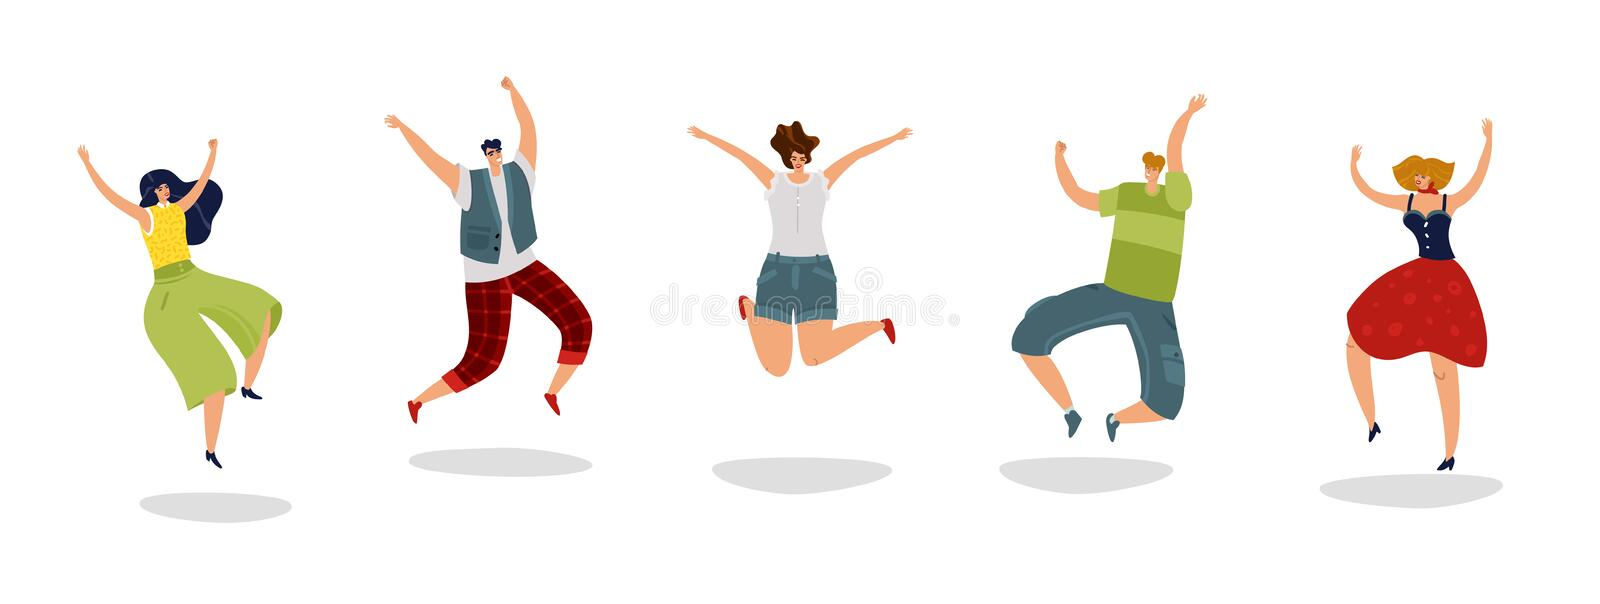 Jumping people. Energetic excited guy jump friends rejoice group teens crowd young happy students happiness flat concept vector illustration